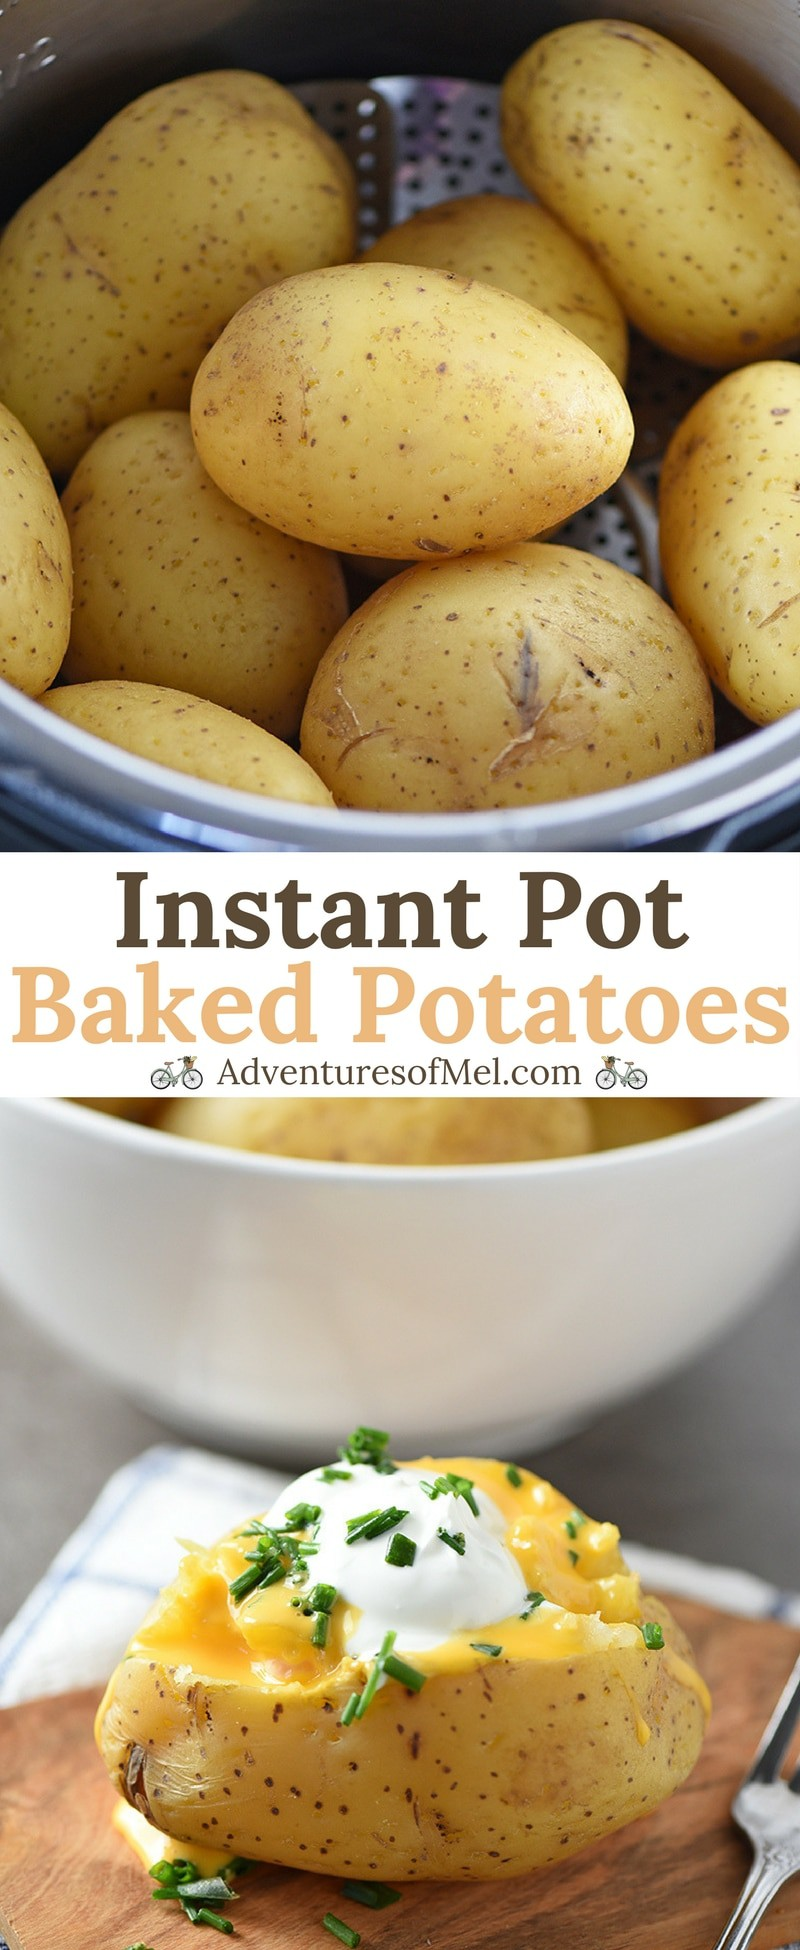 Instant Pot Baked Potatoes are so easy to make, pressure cooked in less than 10 minutes. Tender and delicious, they're a family favorite dinner side.